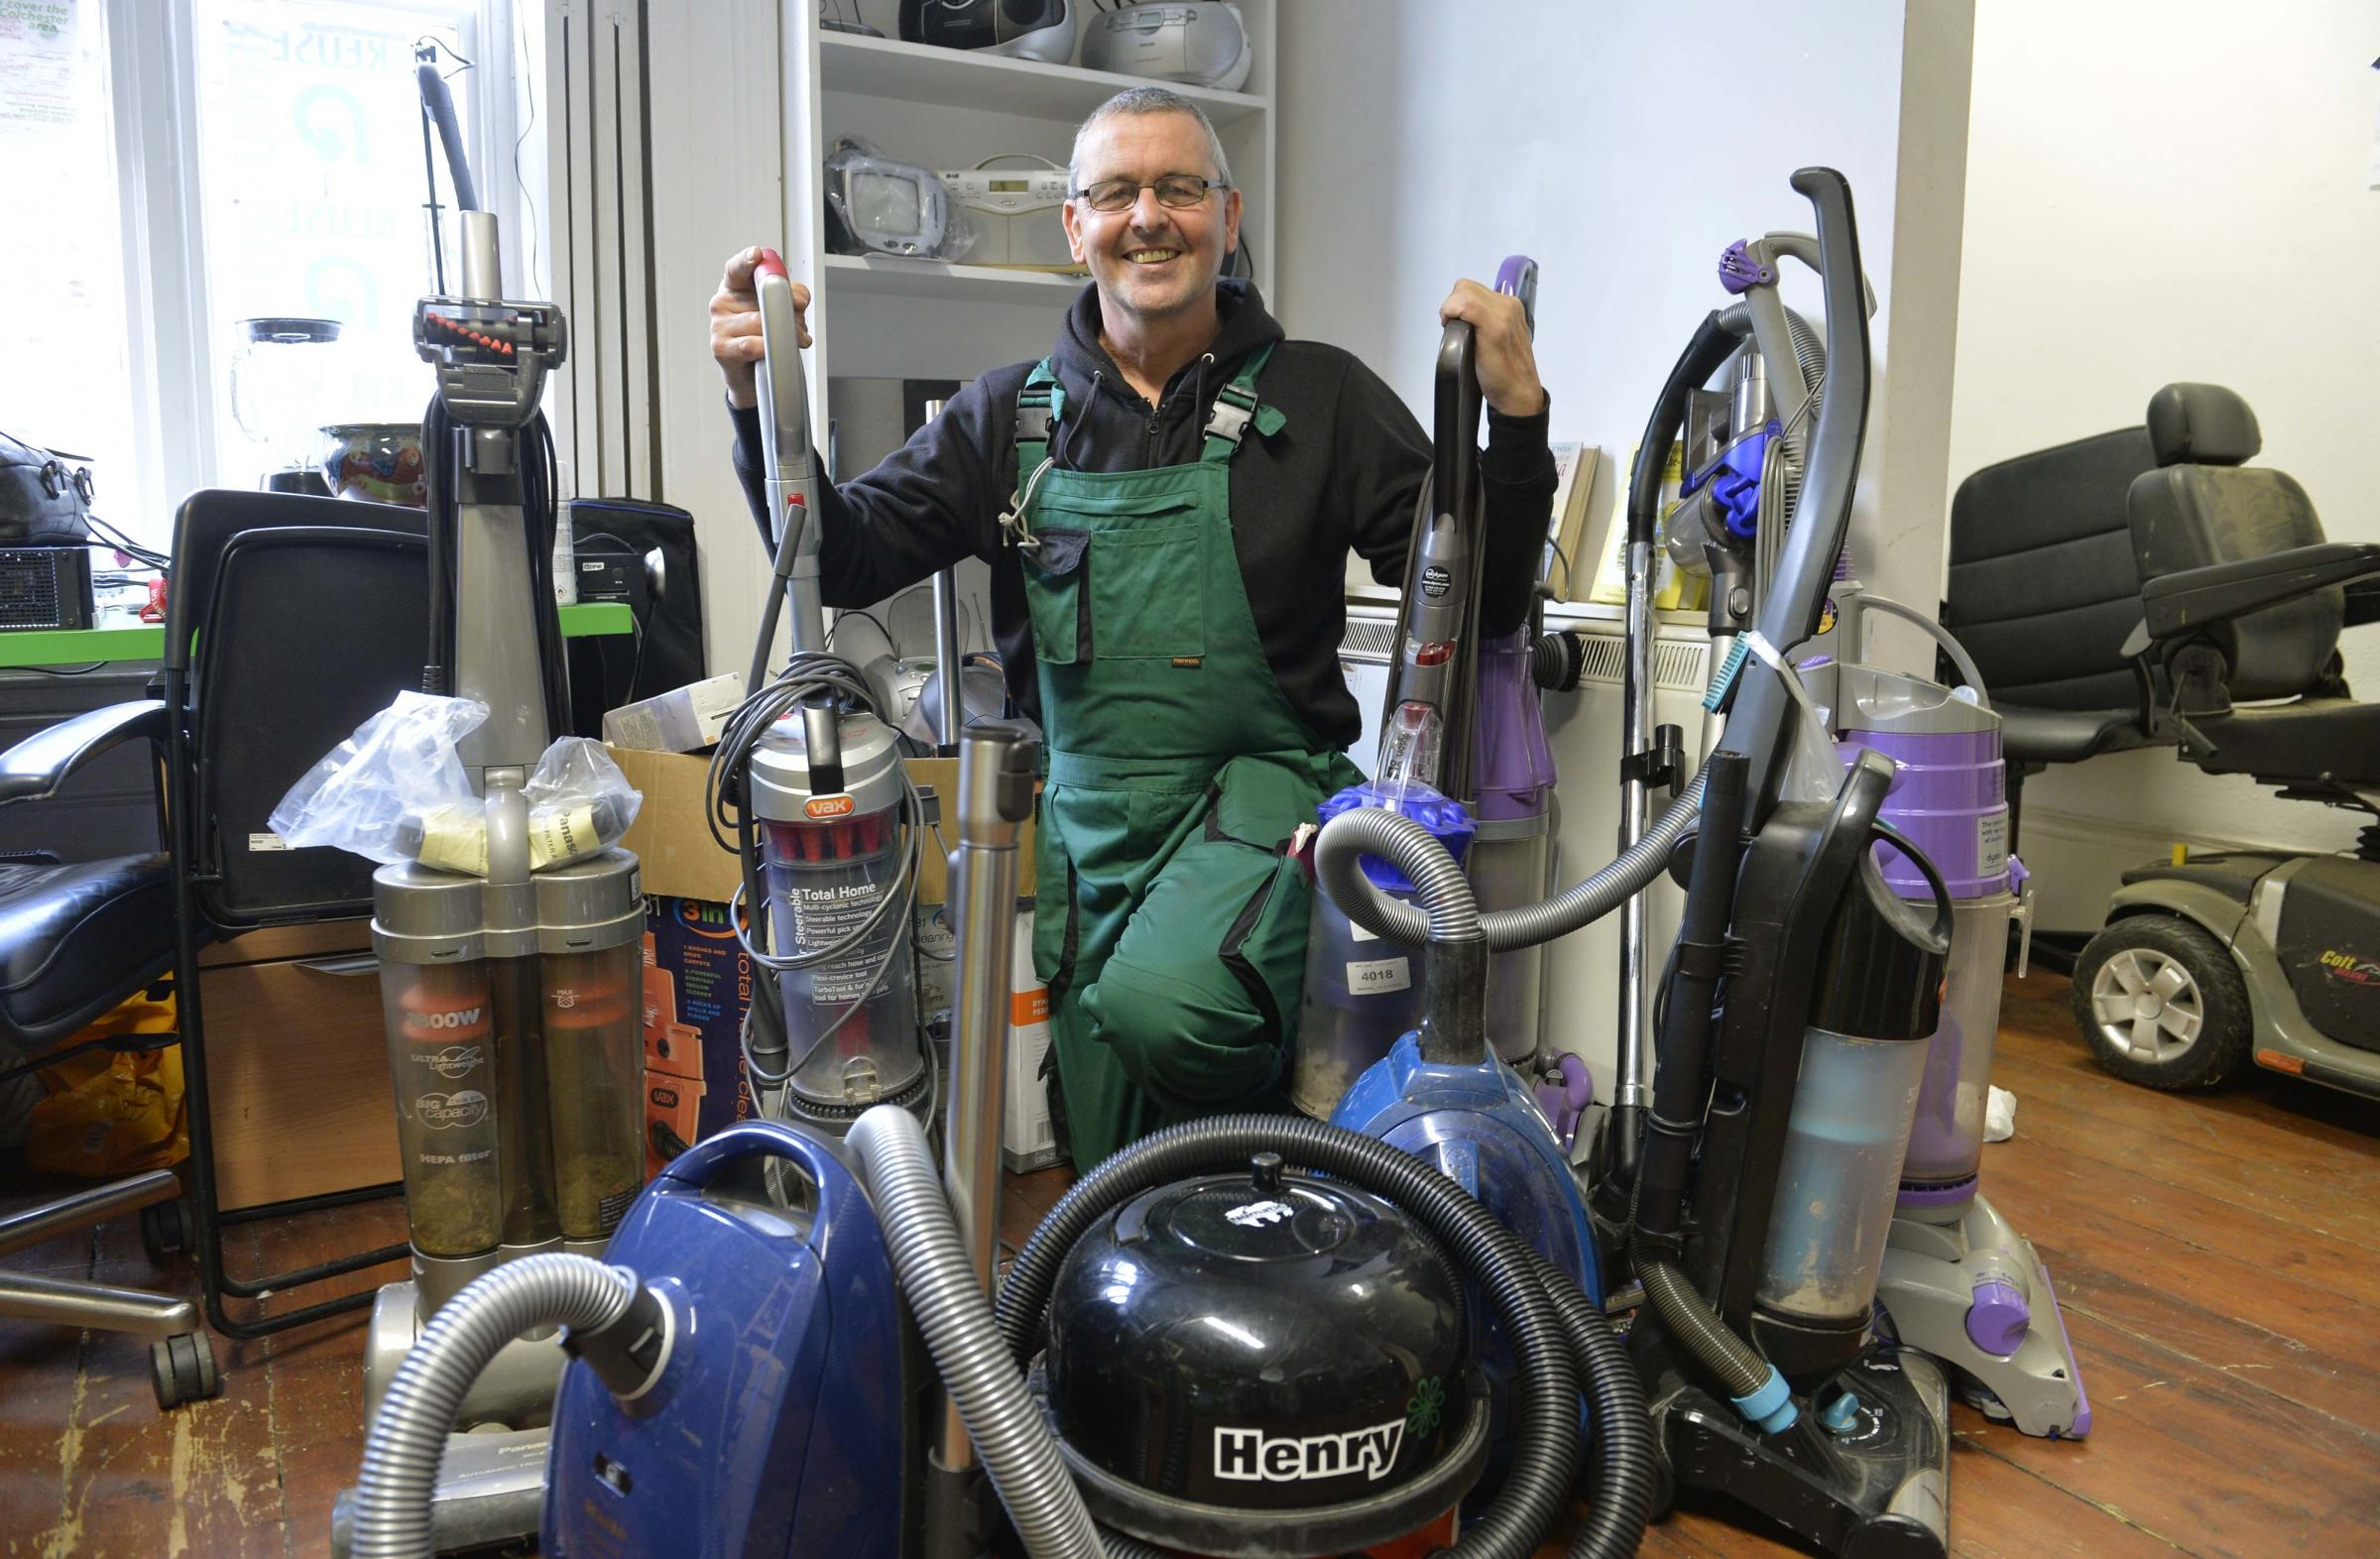 Chris Blomeley, setting up his repair,reuse,recycle shop in Queen Street Colchester. Which will also be supplying environmentally sound detergent.